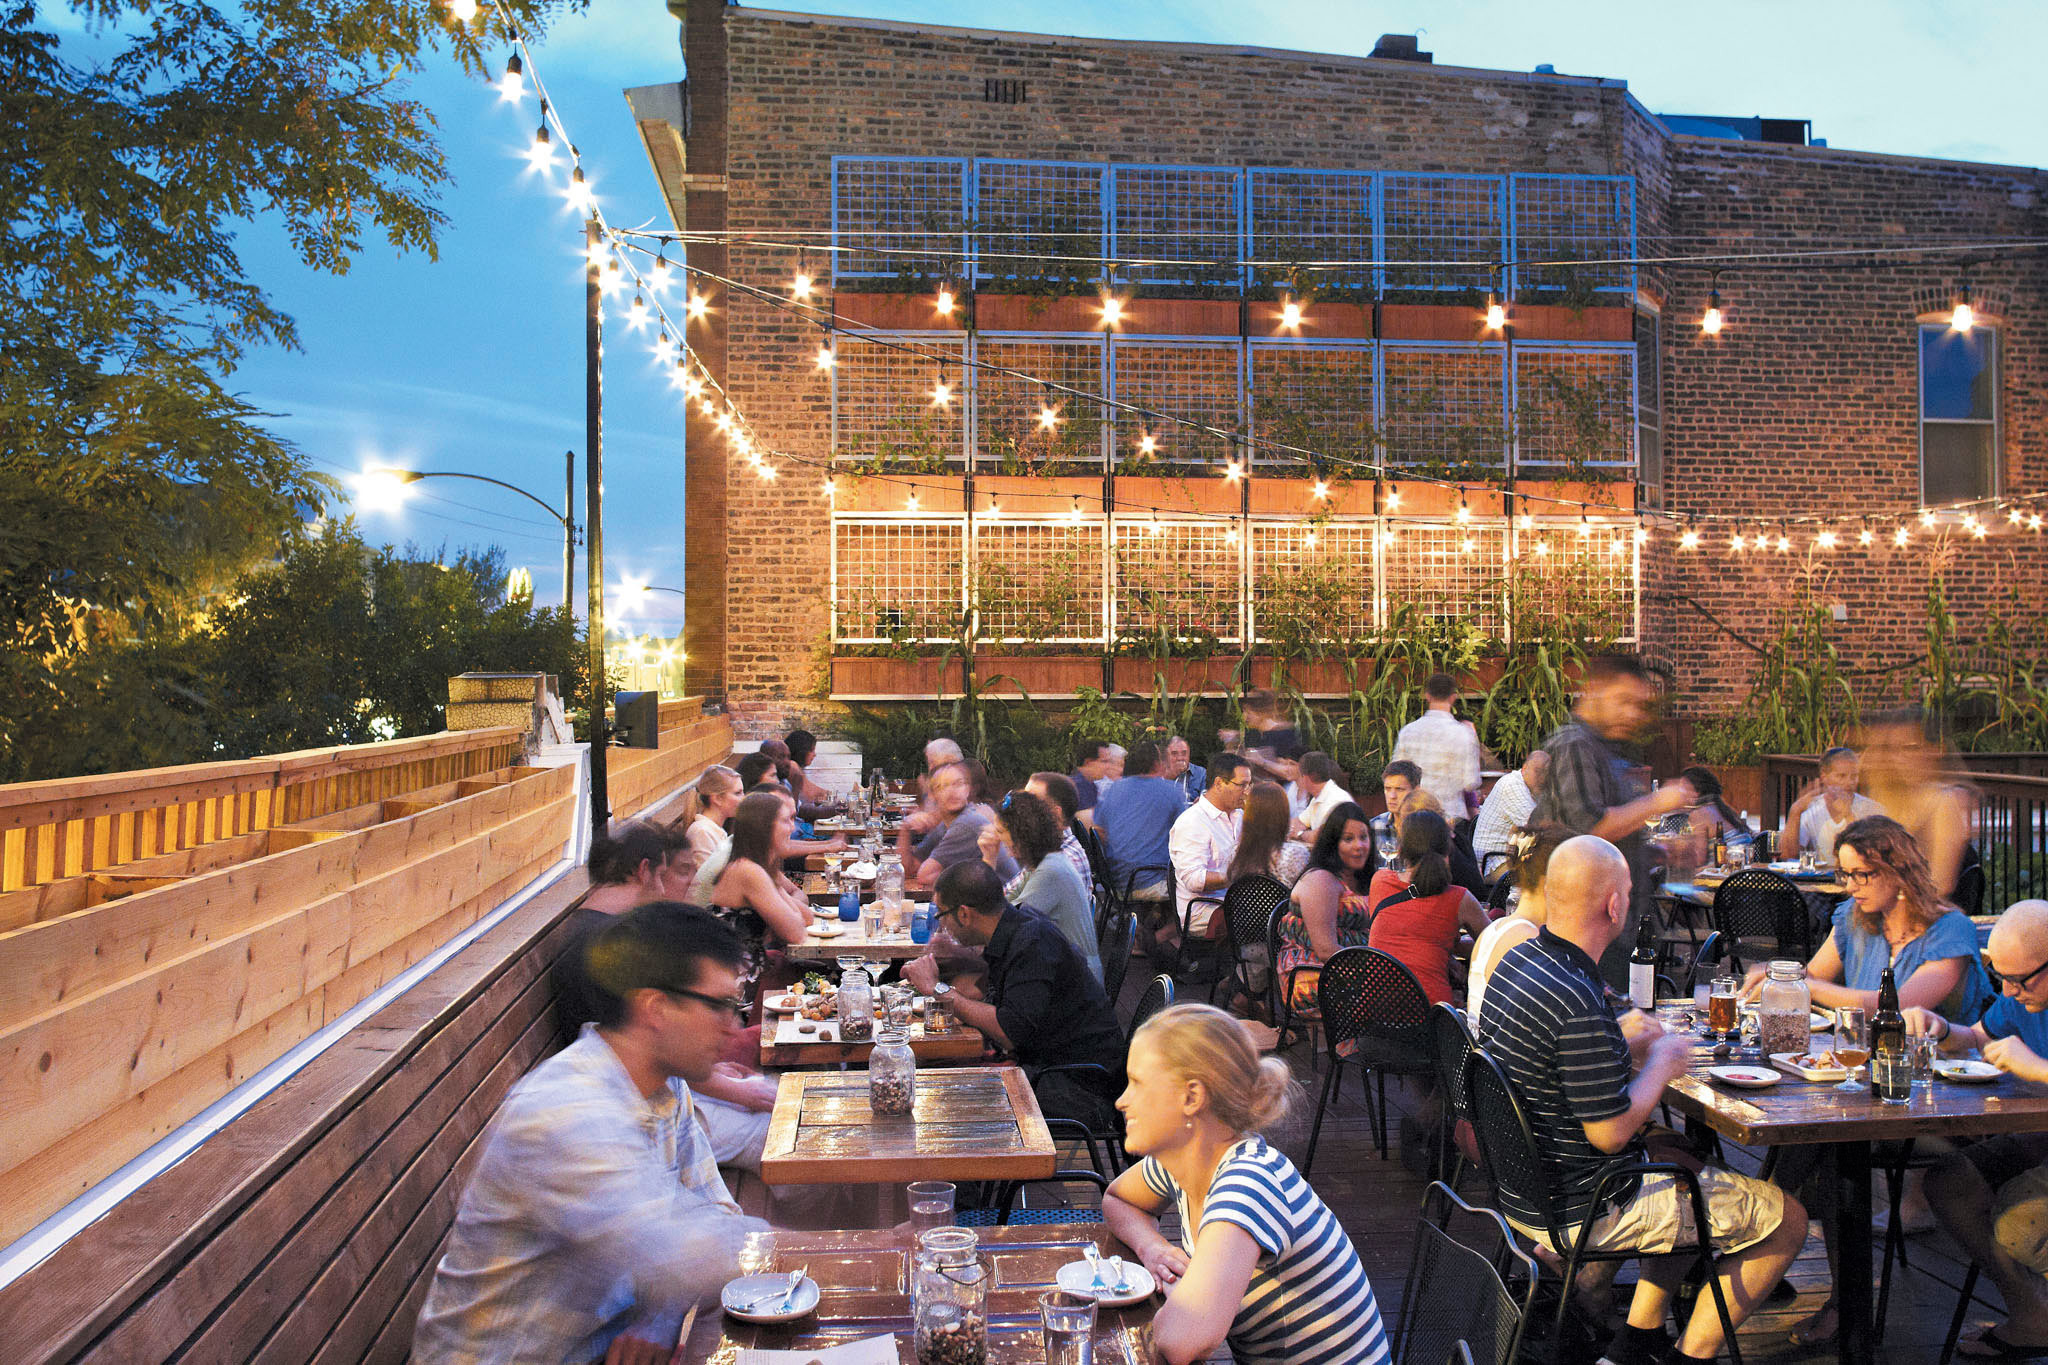 Restaurant Farmhouse Chicago Beer Gardens Rooftop Bars And Outdoor Dining Spots In Chicago